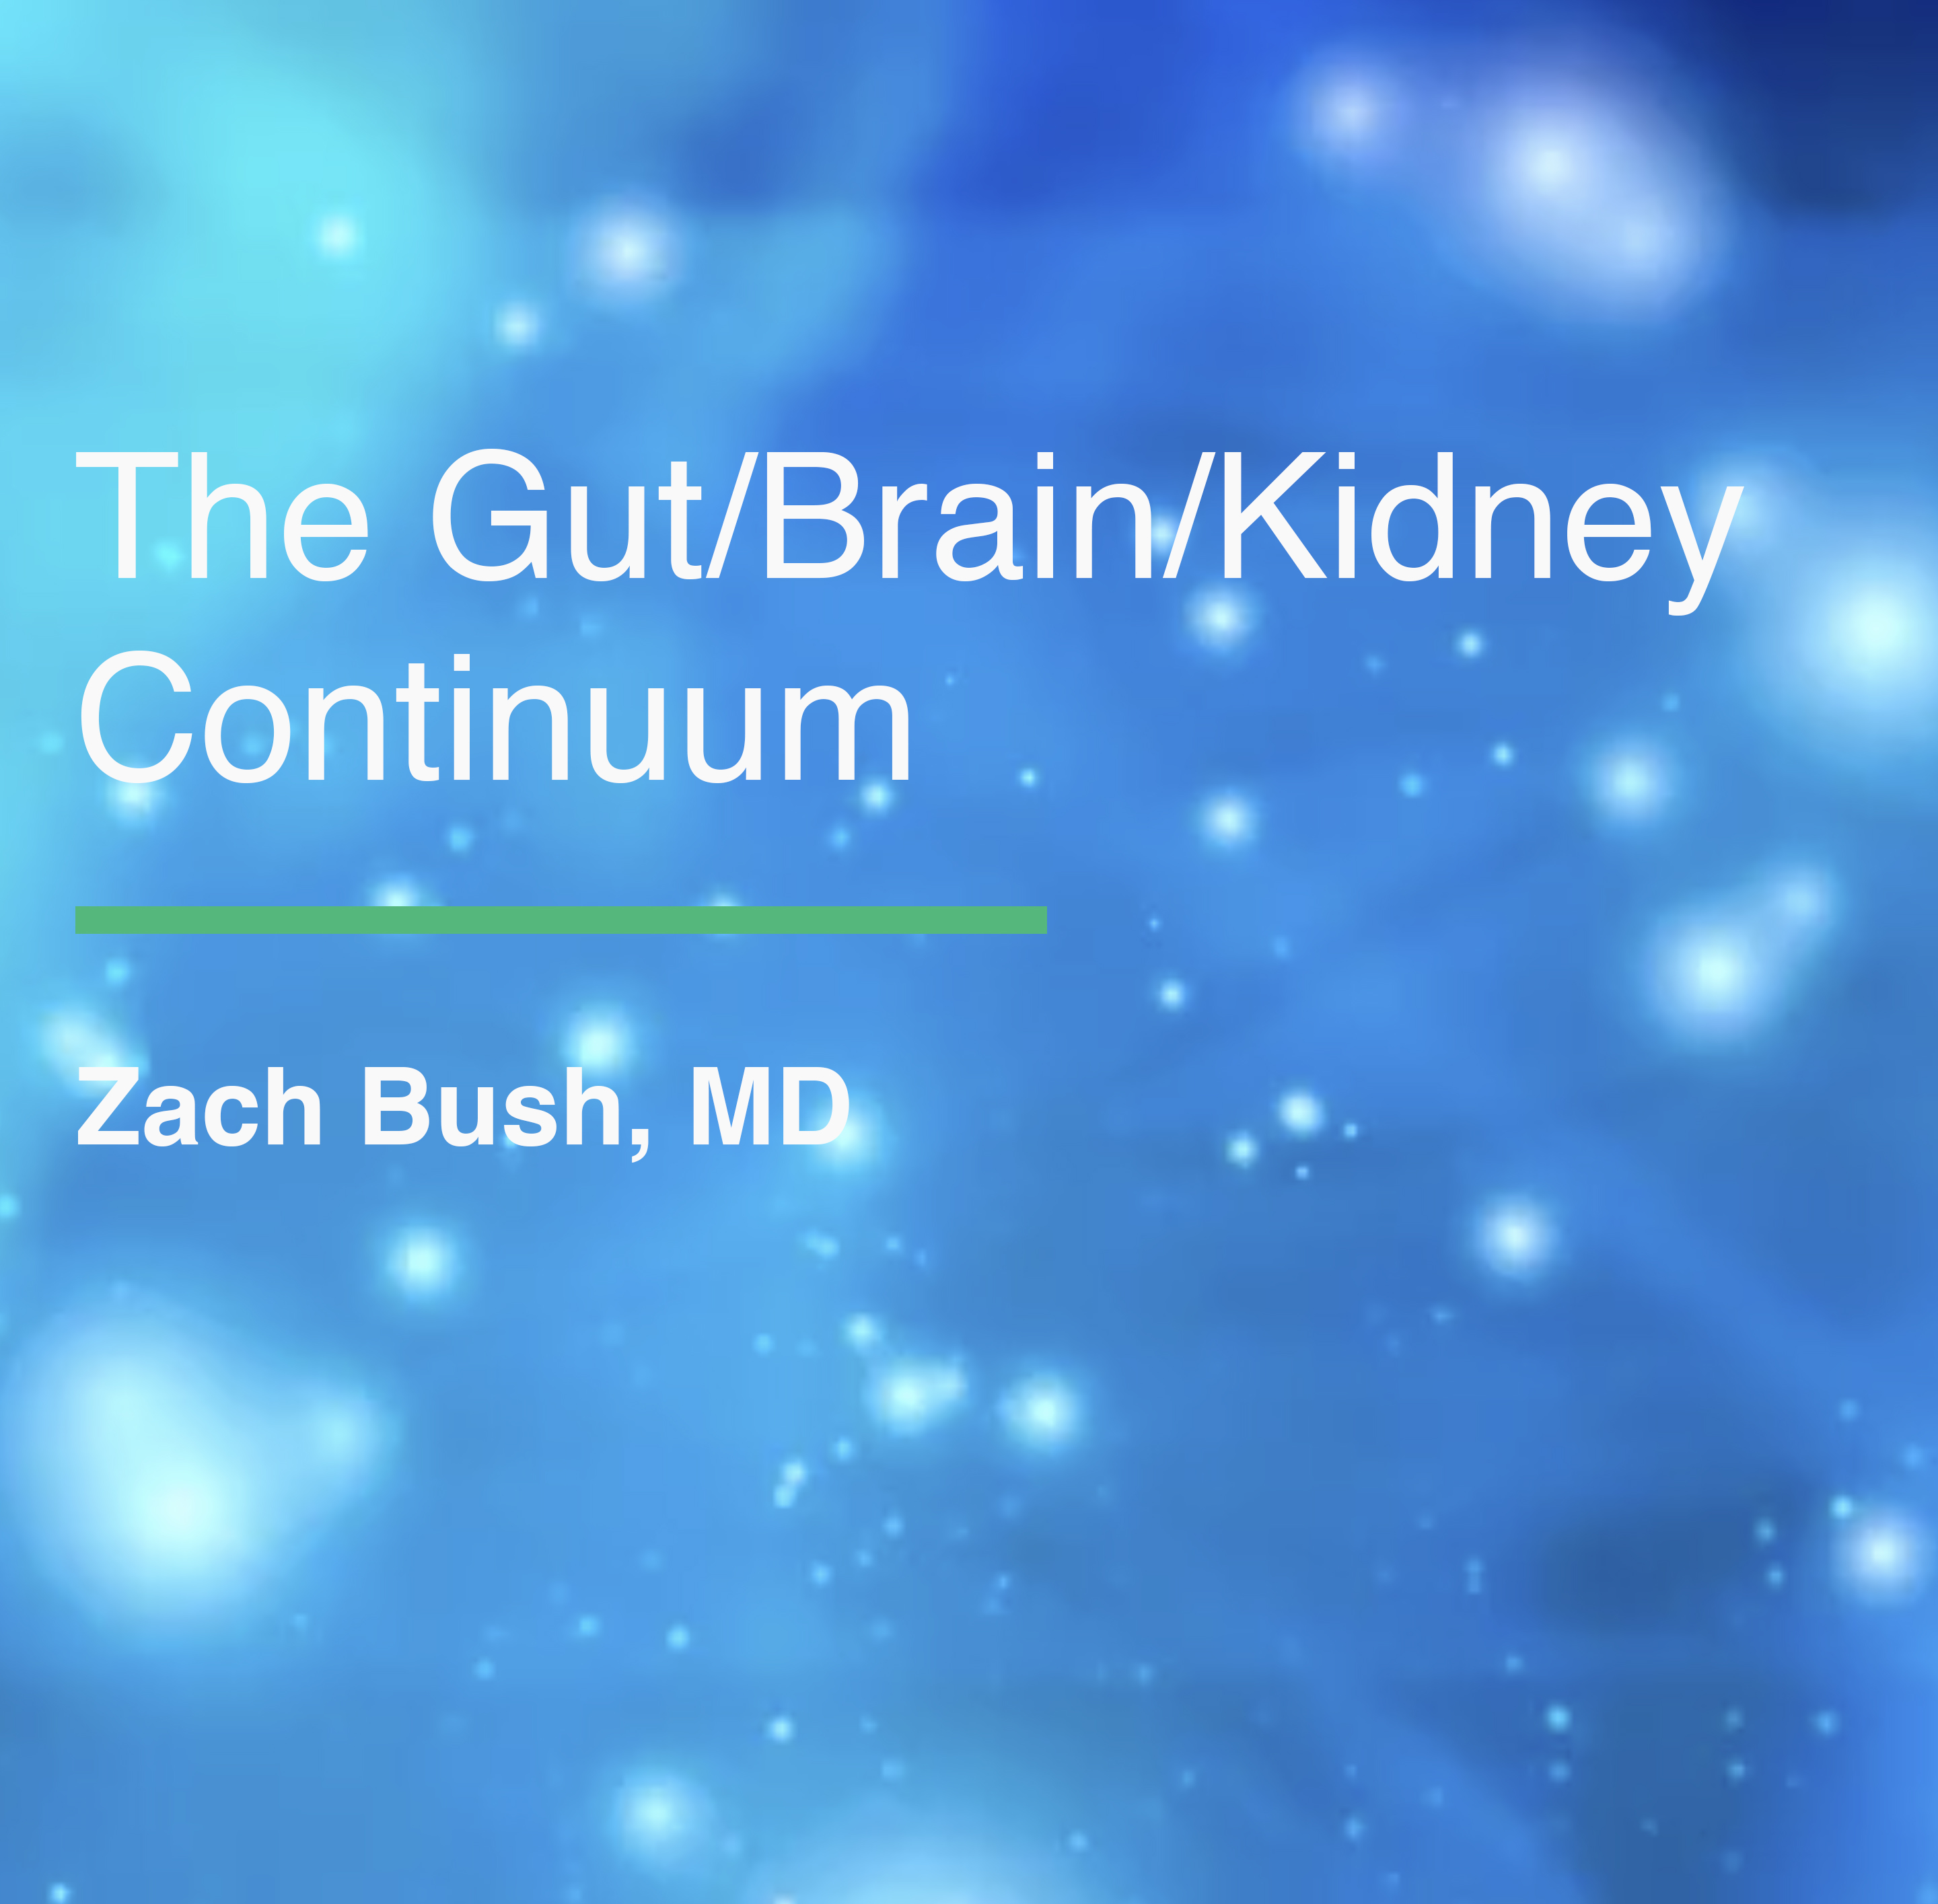 ACIM Fellowship Webinar Series - The Gut/Brain/Kidney Continuum by Zach Bush, MD WGBKC